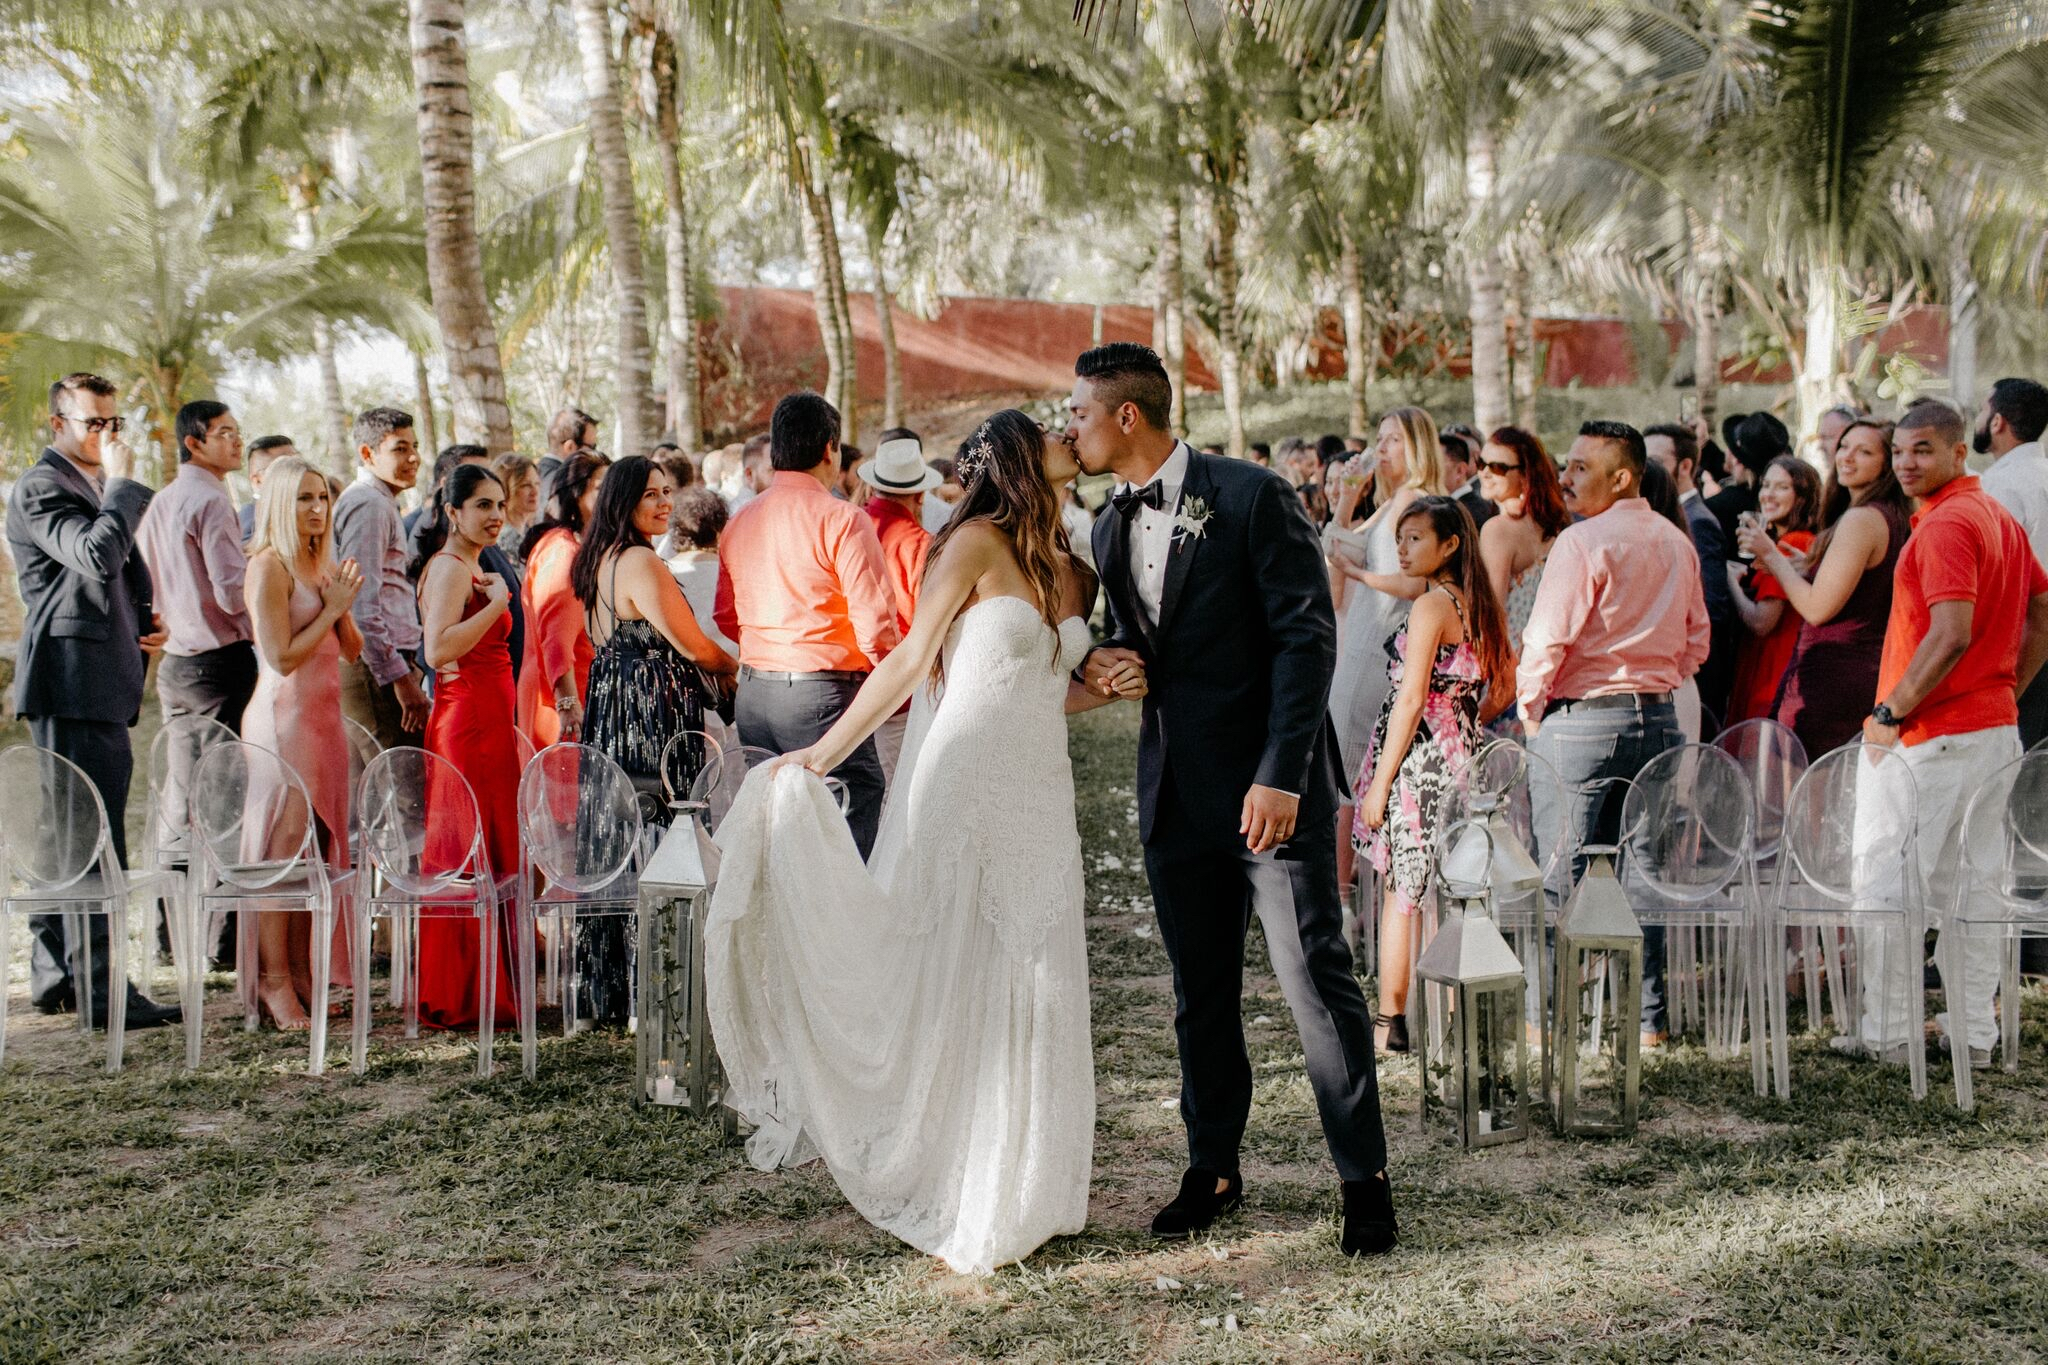 alexandra_celia_sayulita_wedding_britt_julio-1553_preview.jpg